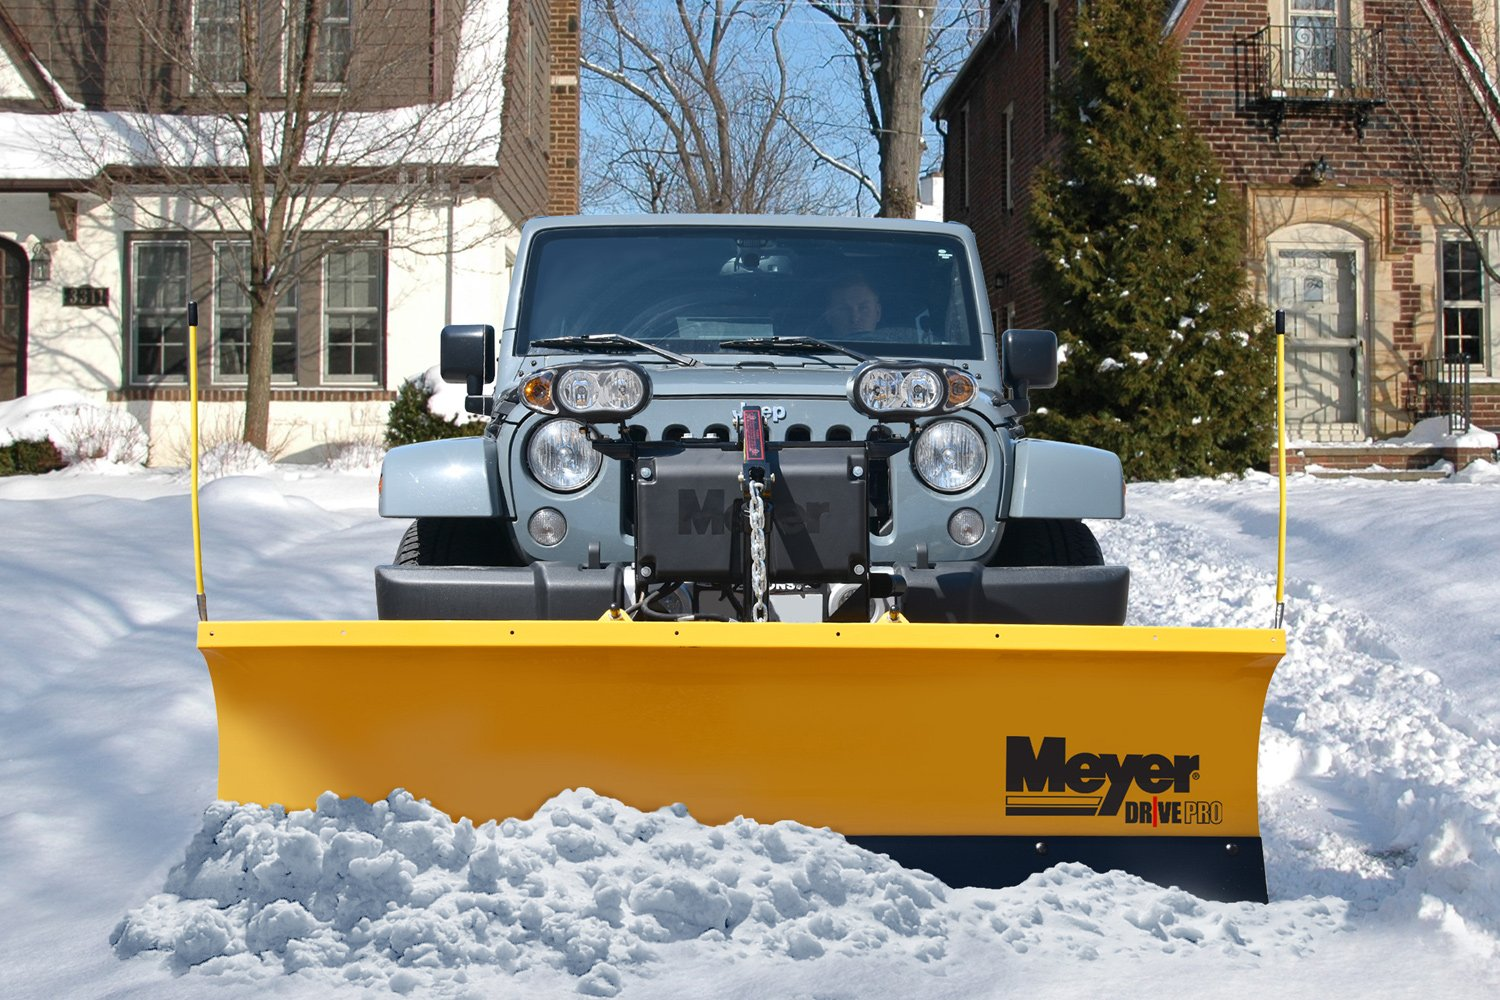 Meyer Drive Pro Snow Plow - Ships Free and Price Match ...